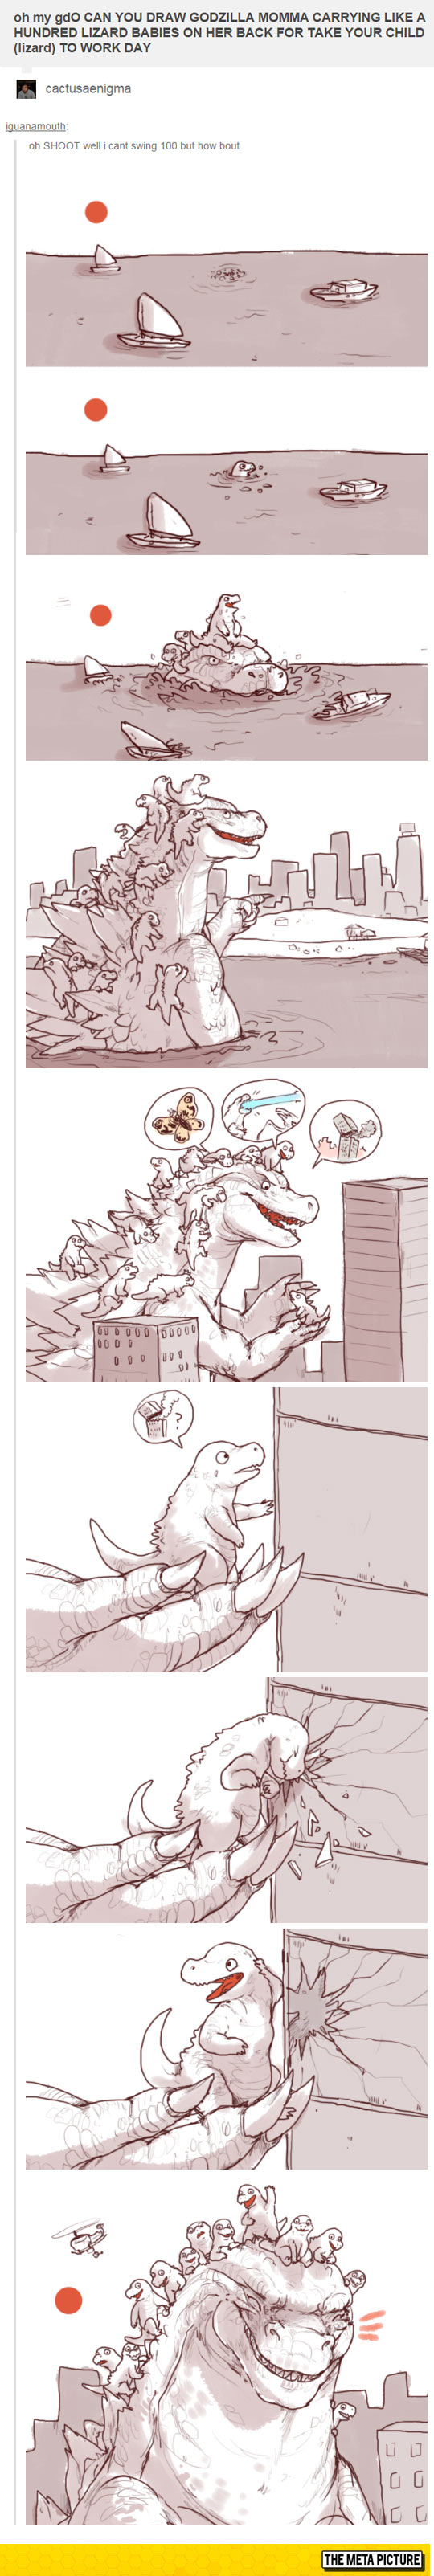 funny-Godzilla-mother-lizard-babies-drawing